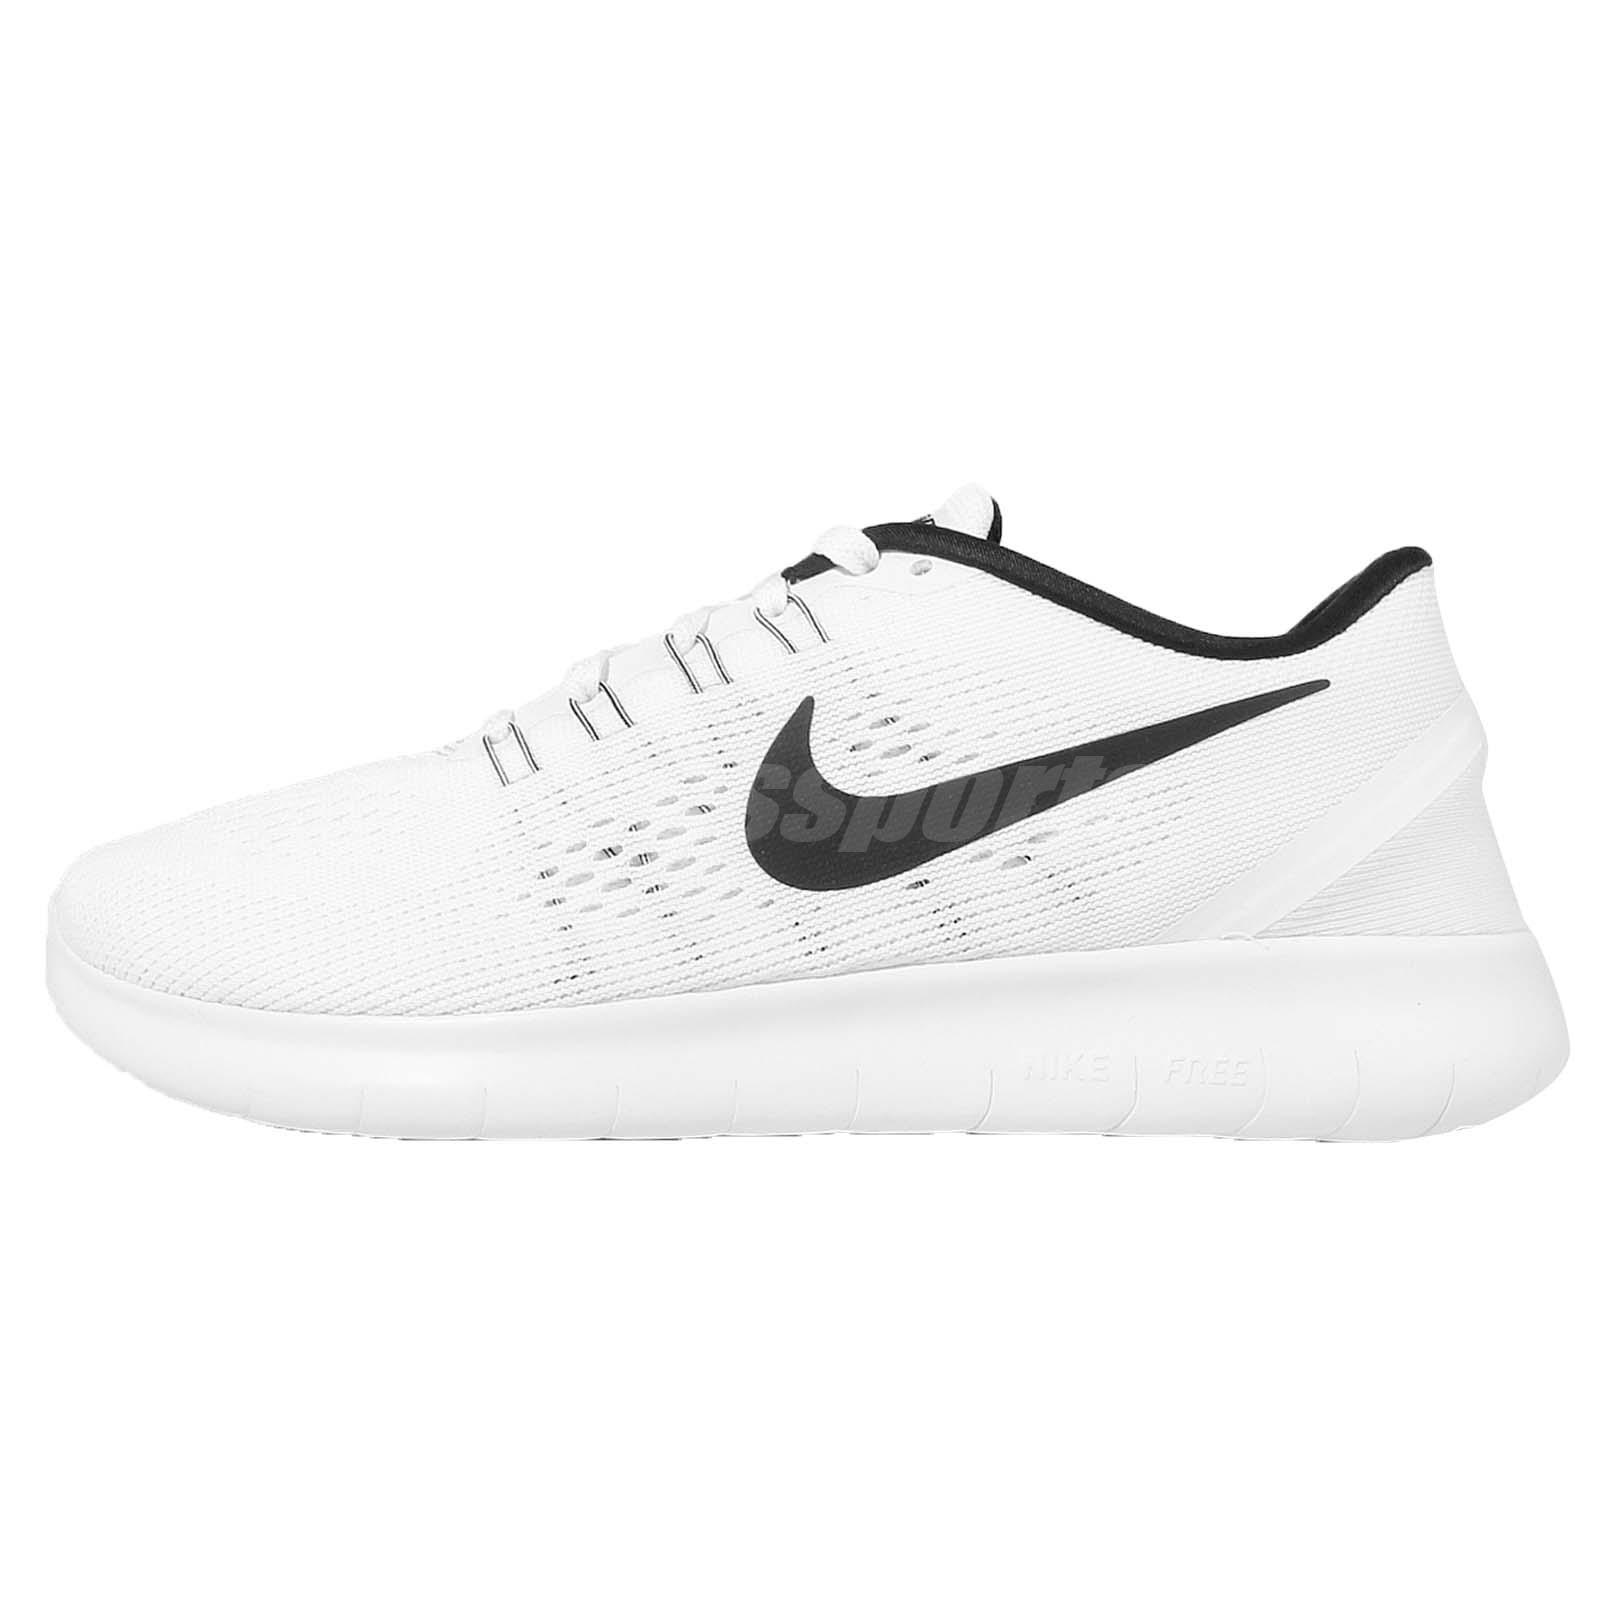 Wmns Nike Free RN White Black Womens Running Shoes Trainers Sneakers 831509- 100